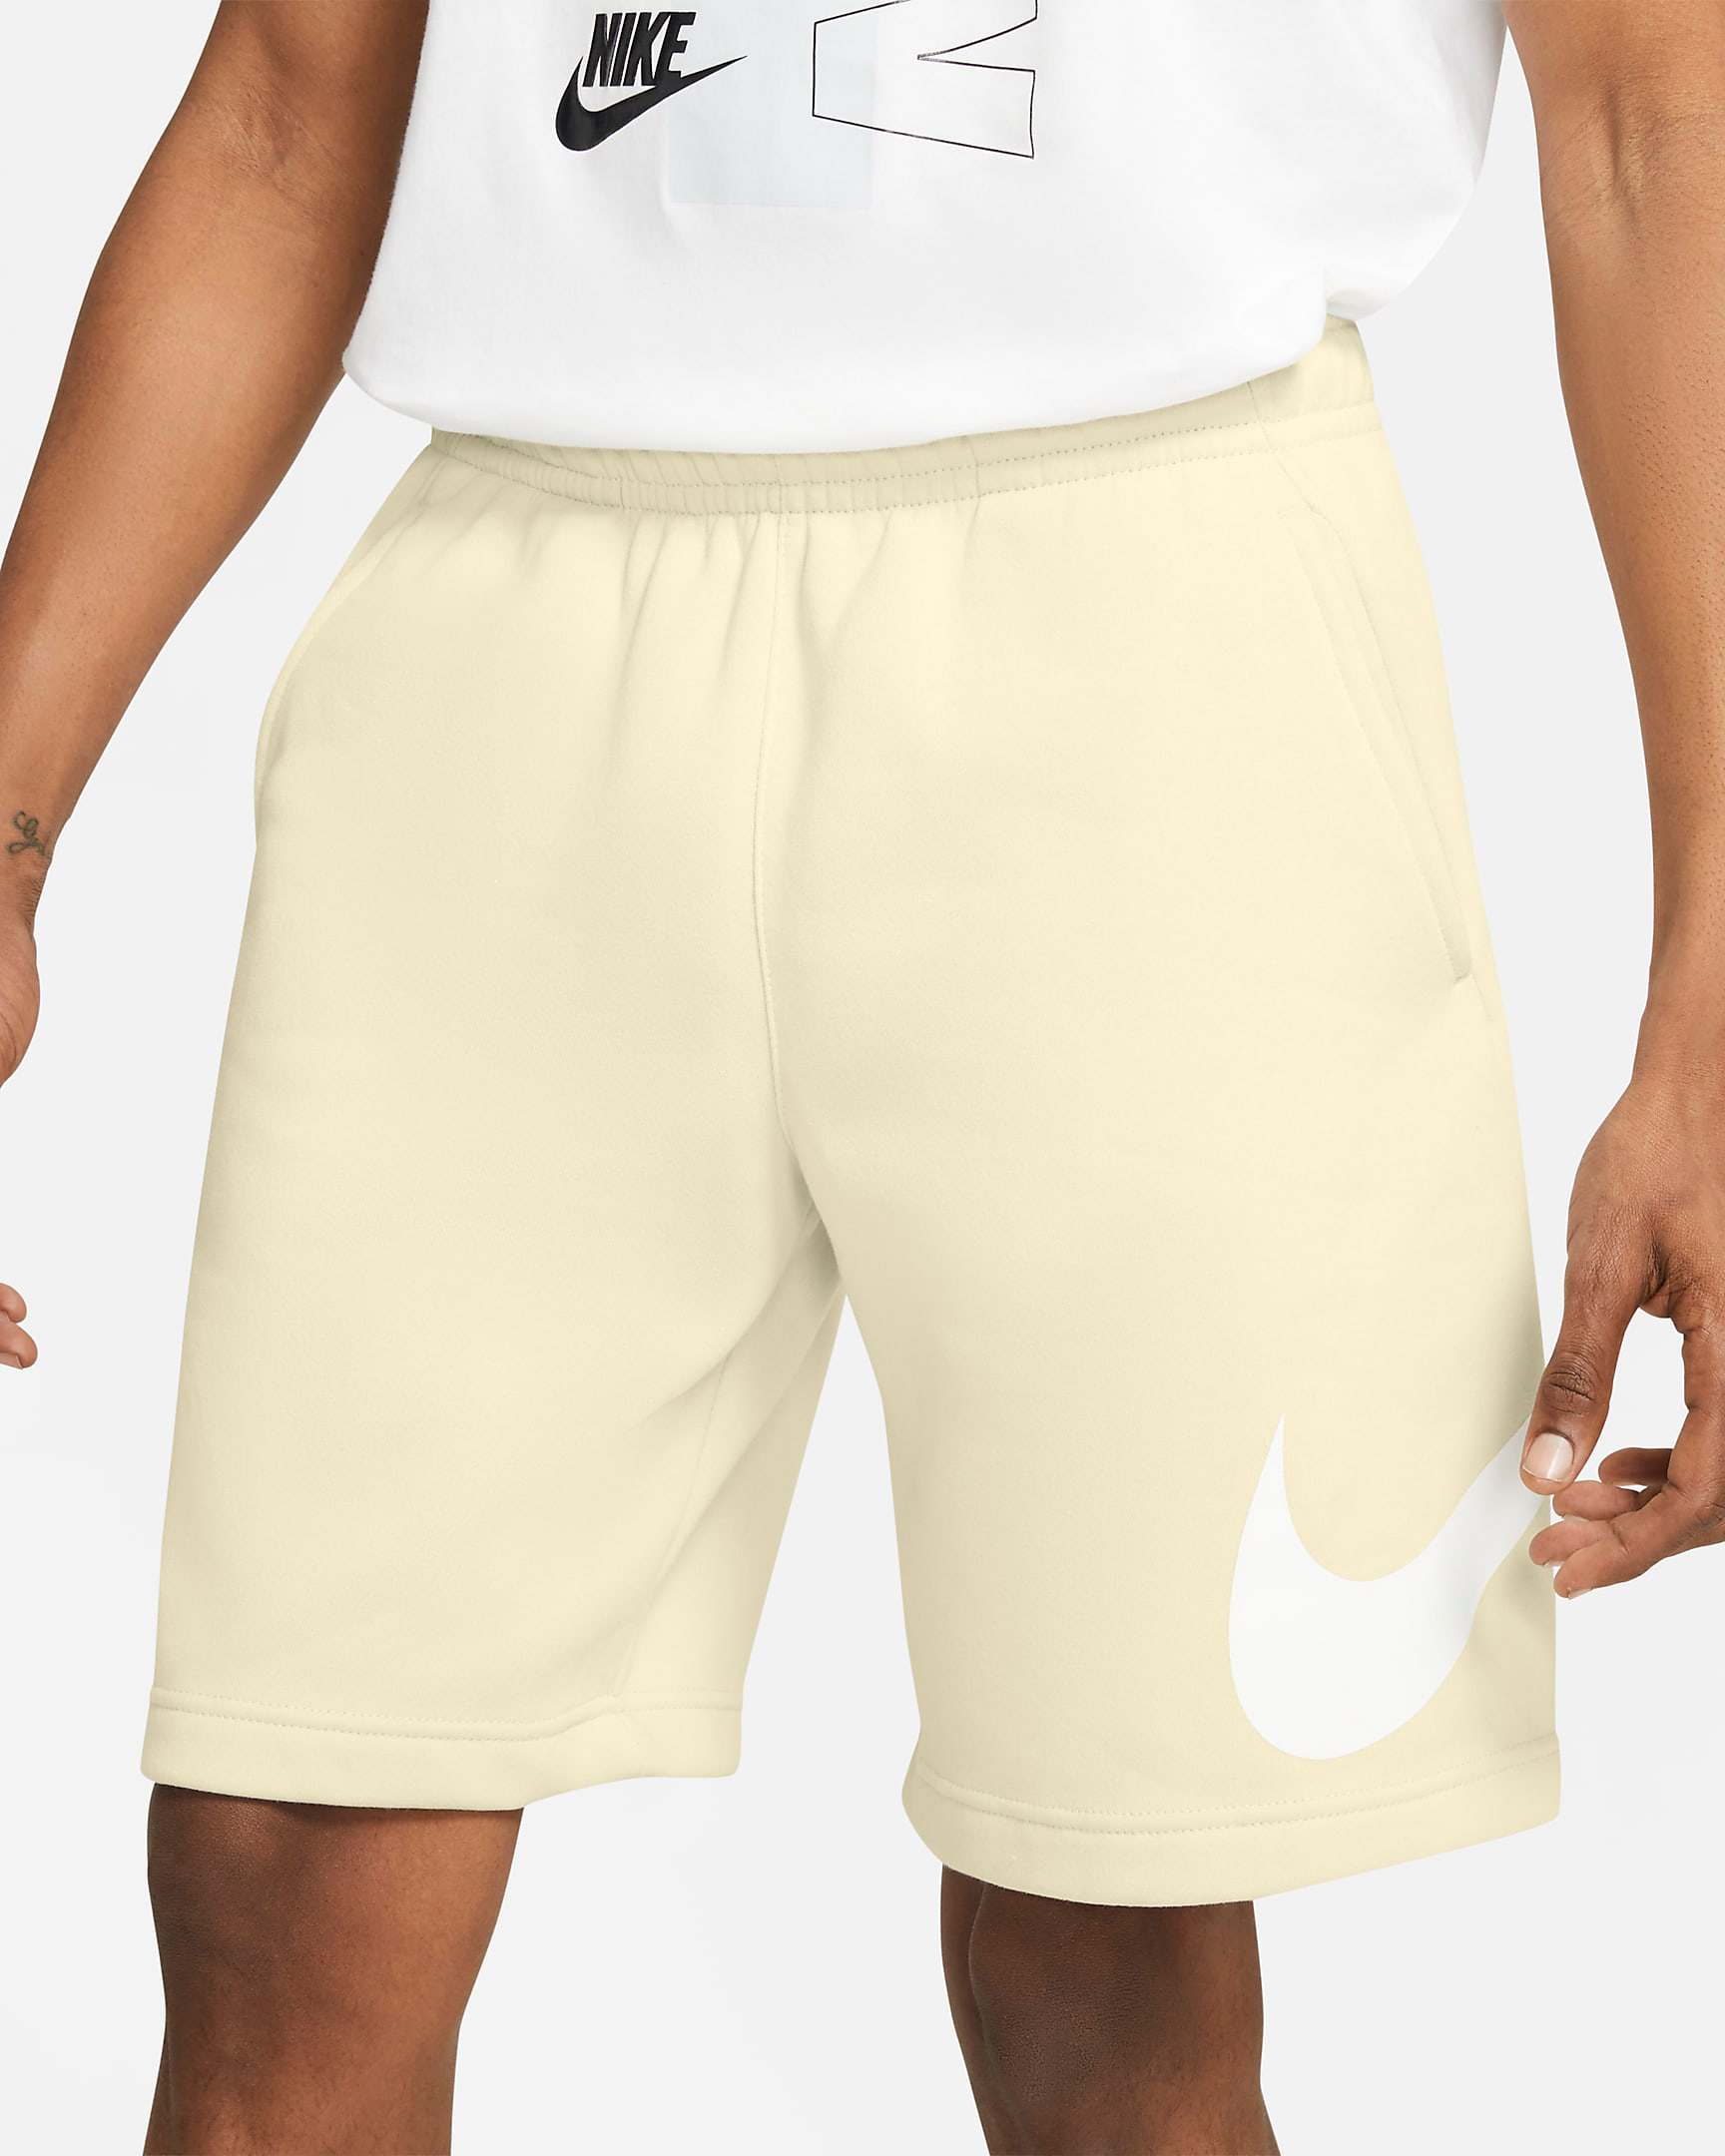 nike-air-force-1-popcorn-coconut-milk-shorts